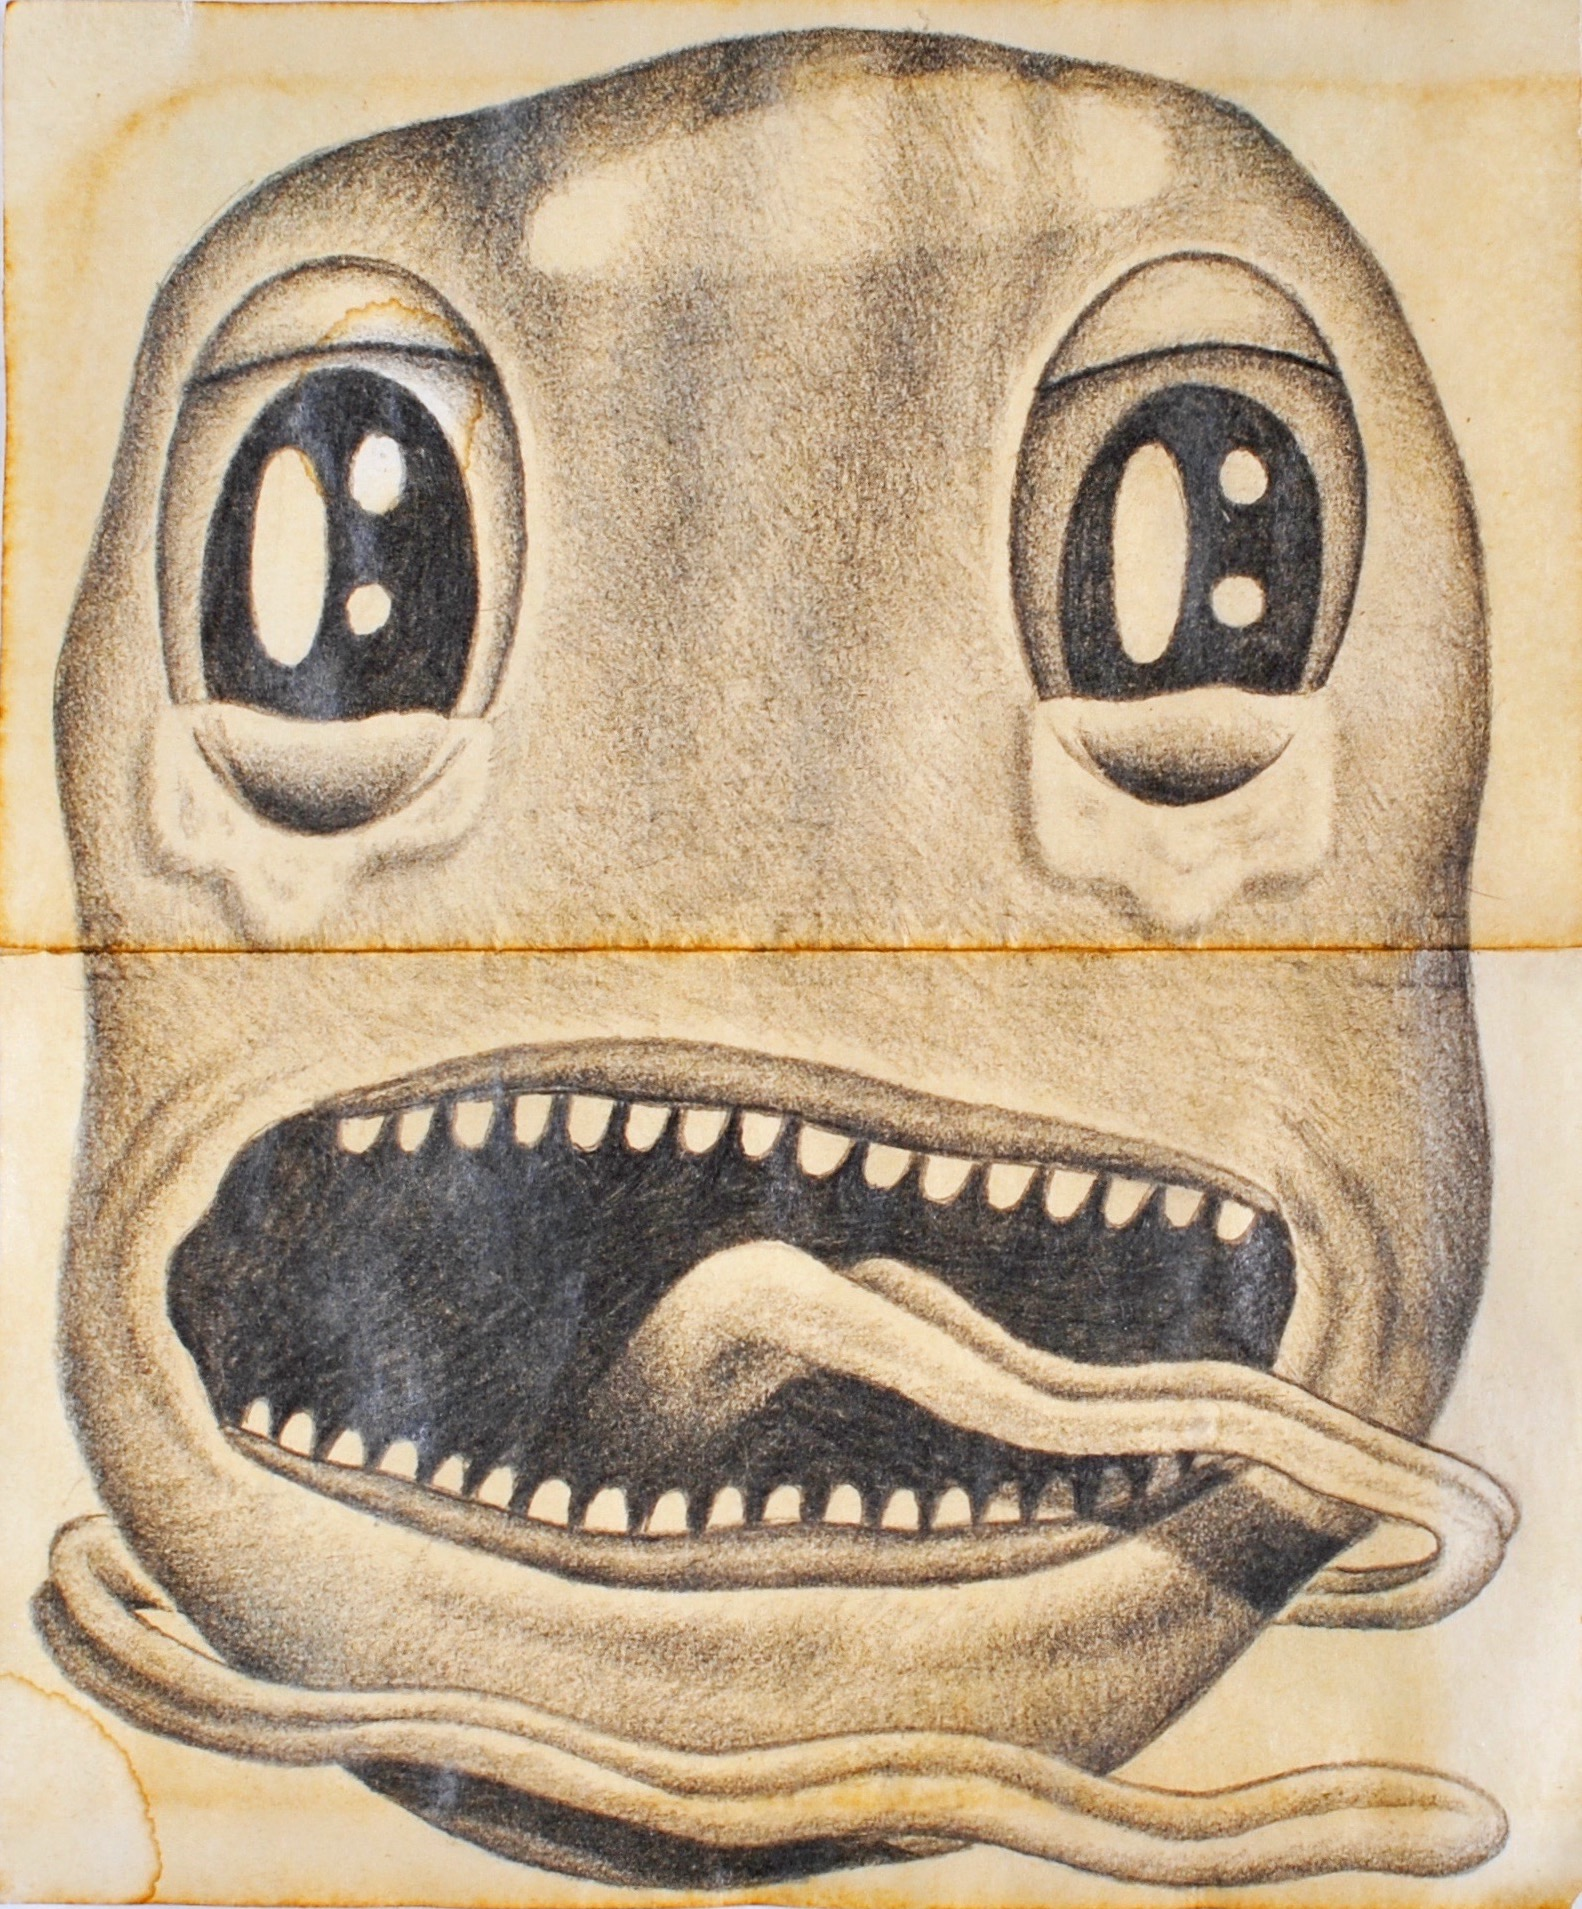 Sad_trippy_Smiley_Drawing_Cropped.jpeg